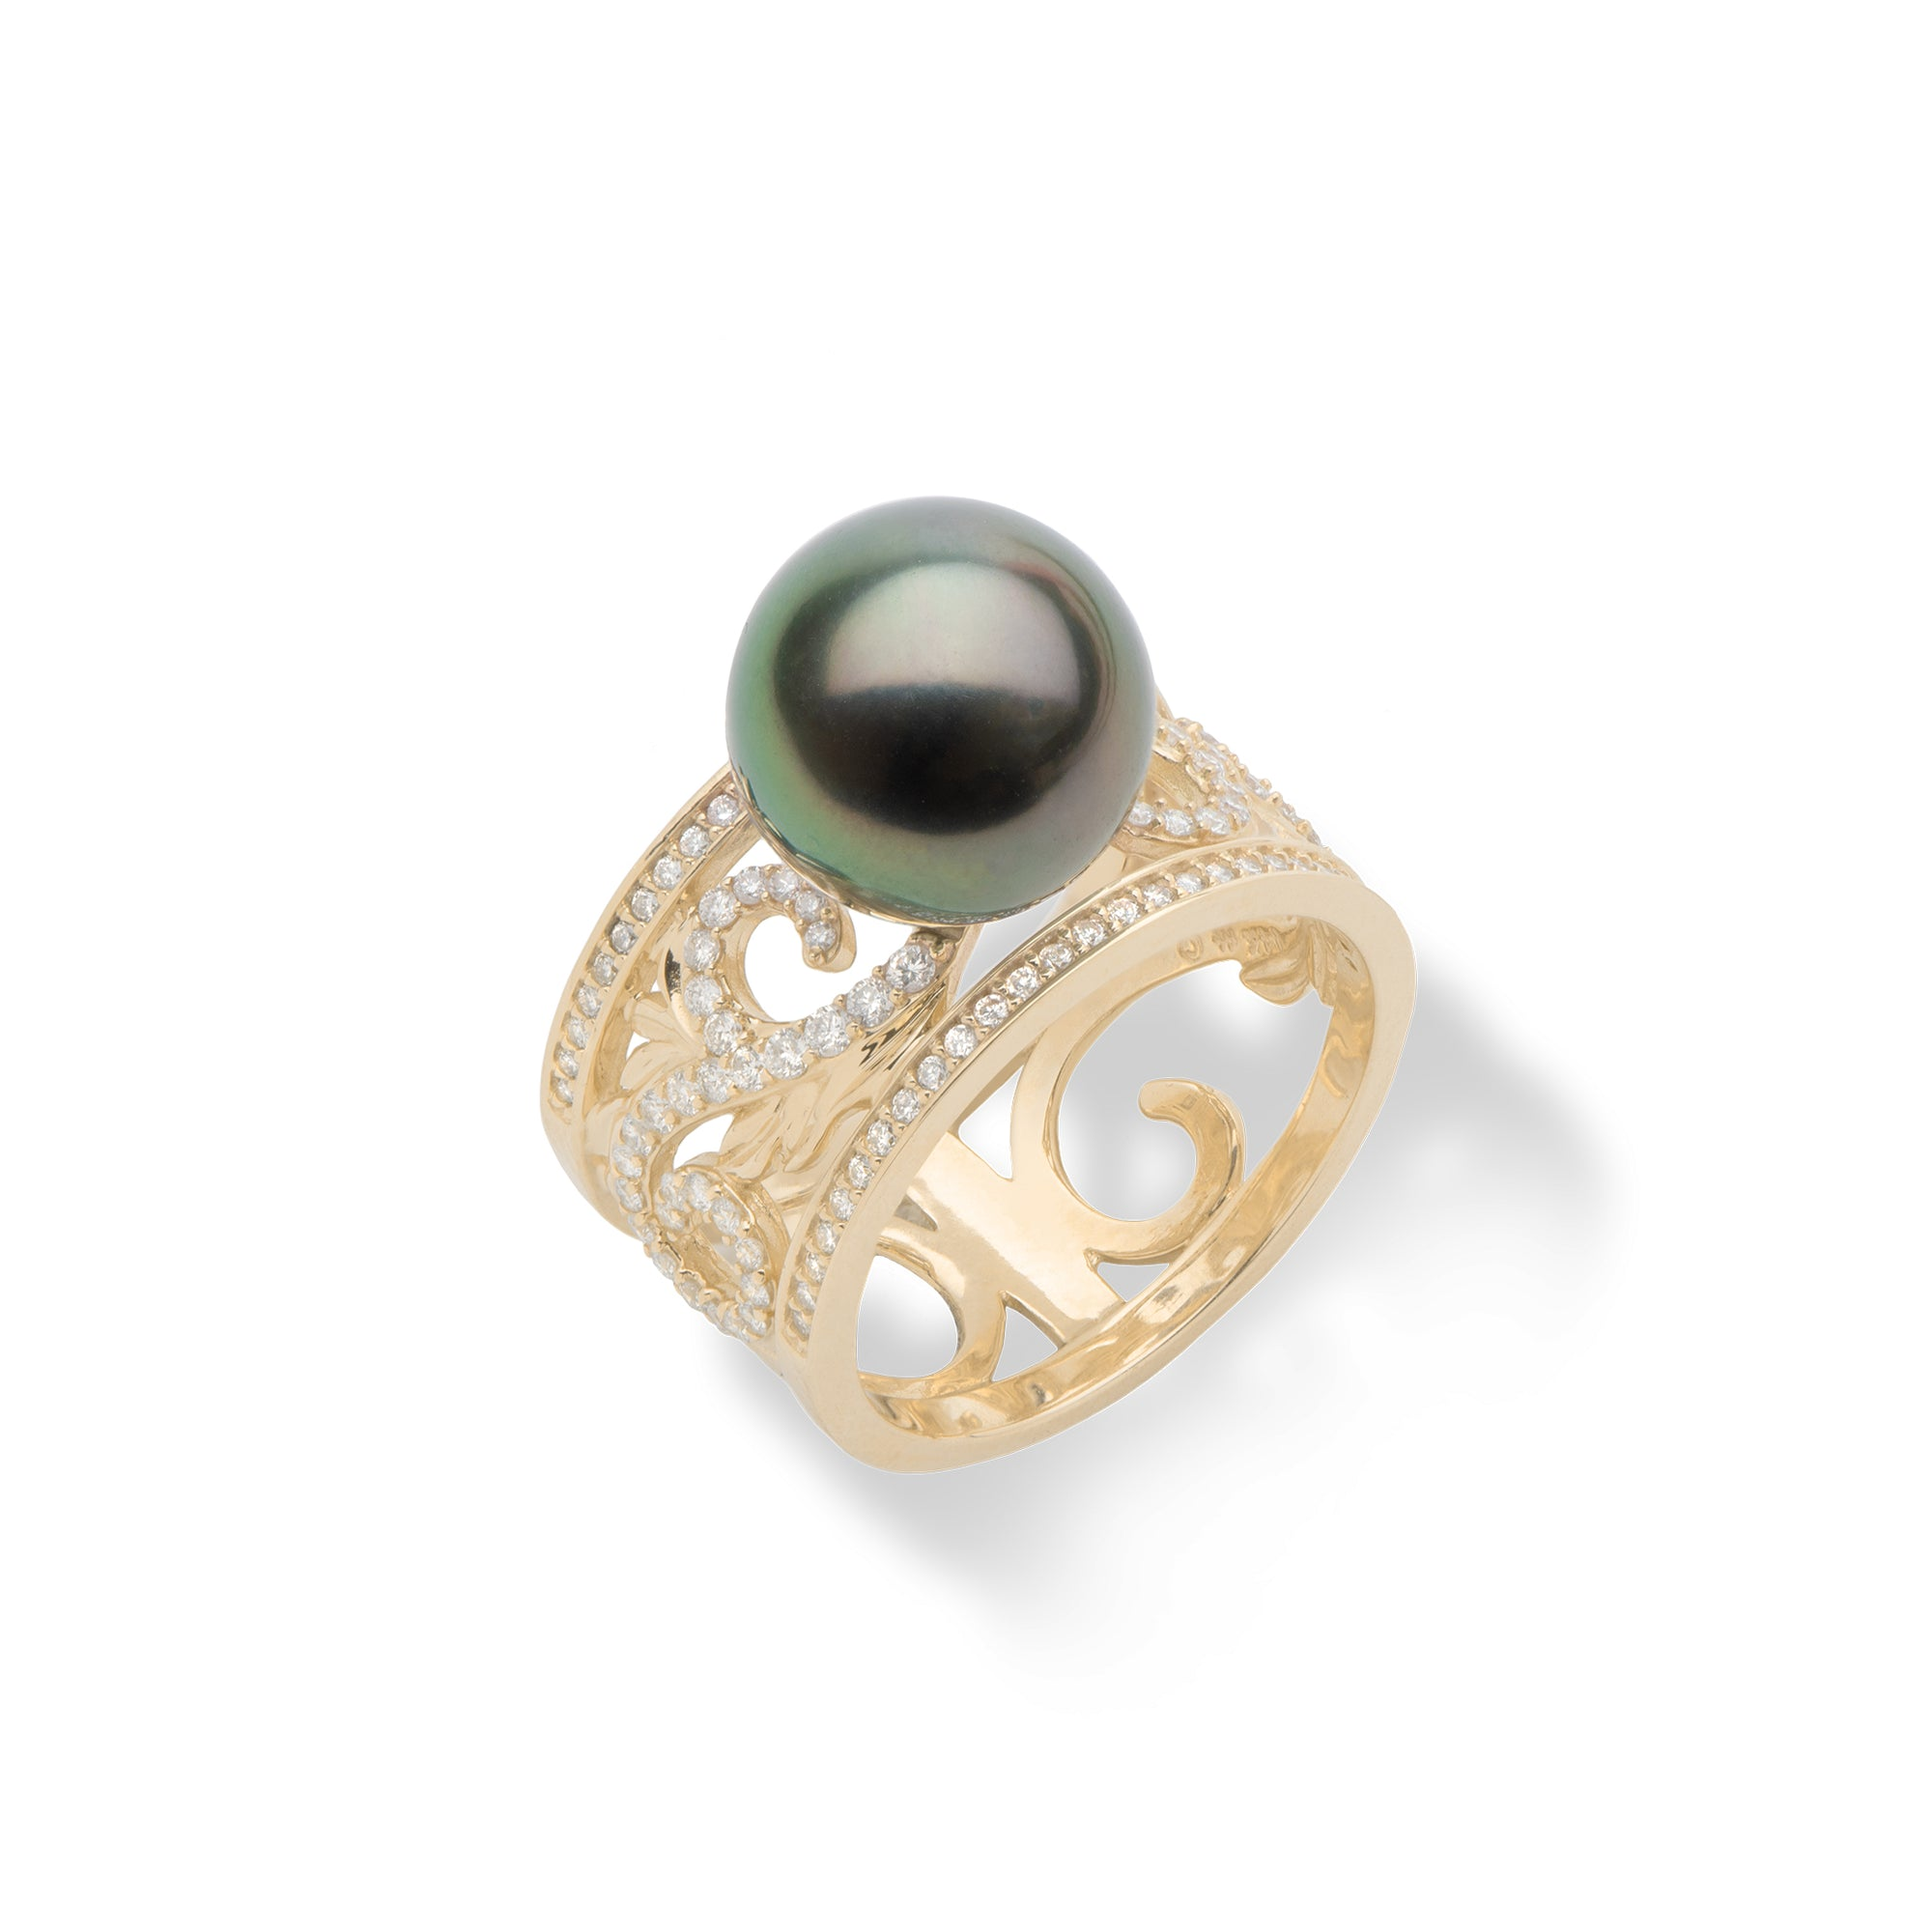 Hawaiian Heirloom Tahitian Black Pearl Ring with Diamonds in 14K Yellow Gold 11-12mm - Maui Divers Jewelry